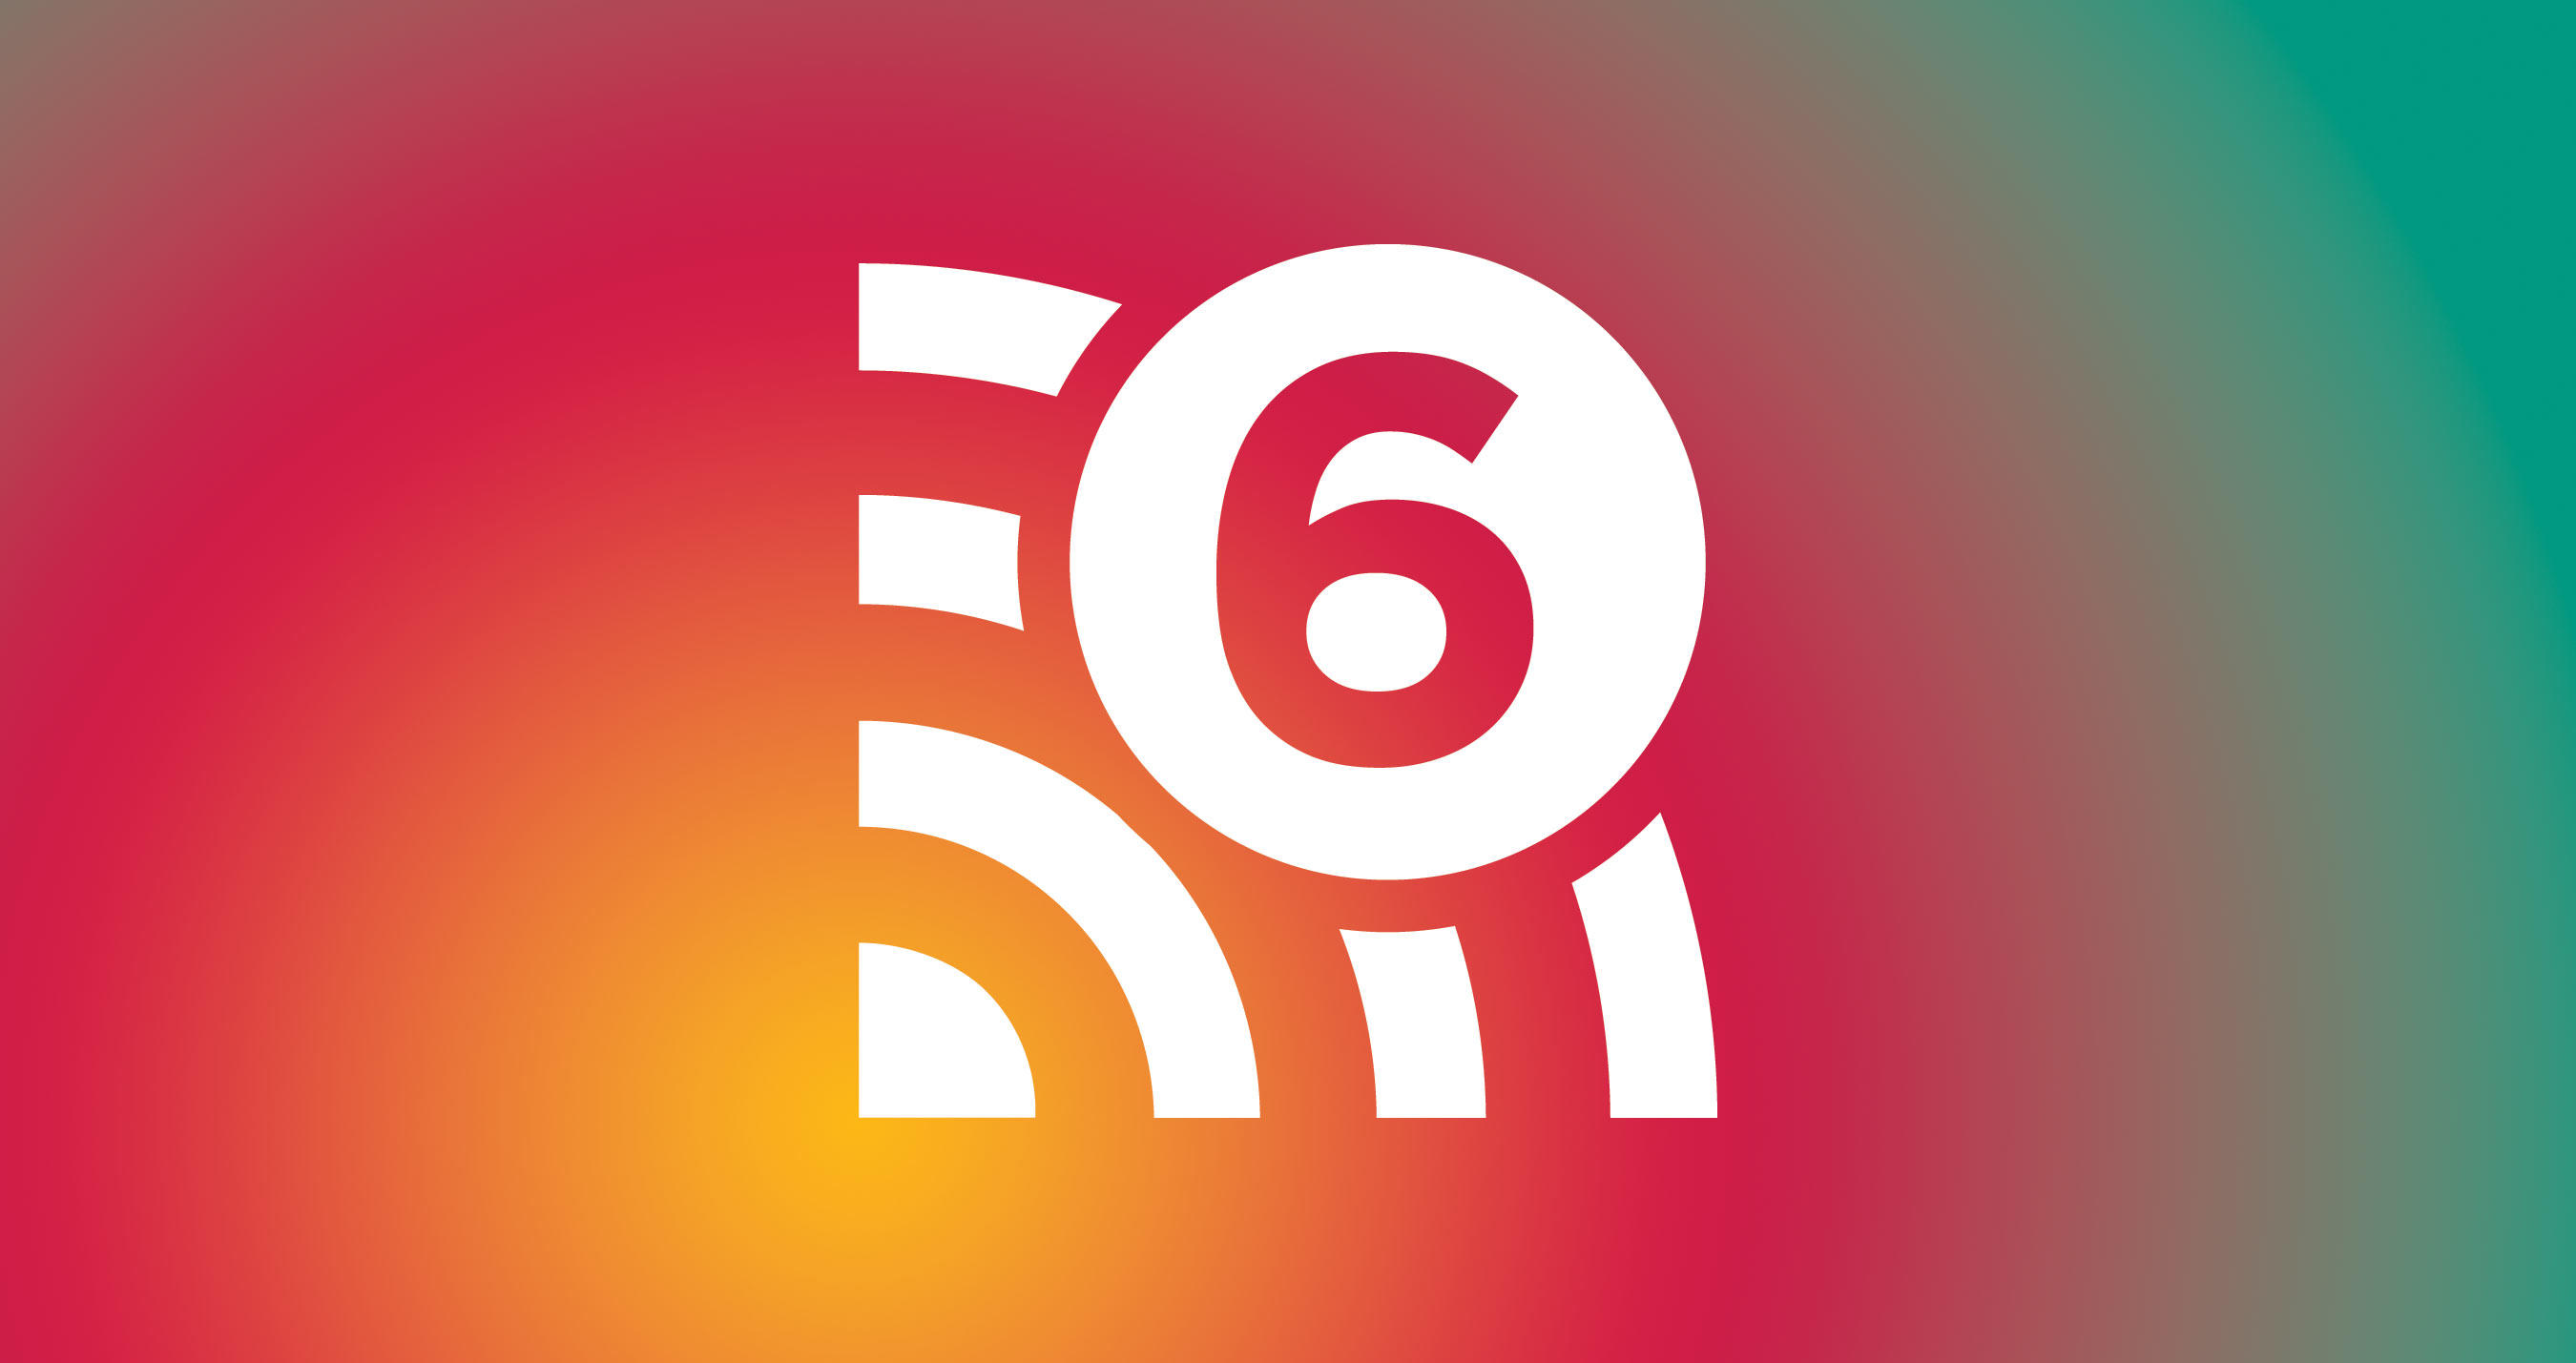 The Wi-Fi Alliance wants you to look for the Wi-Fi 6 logo.